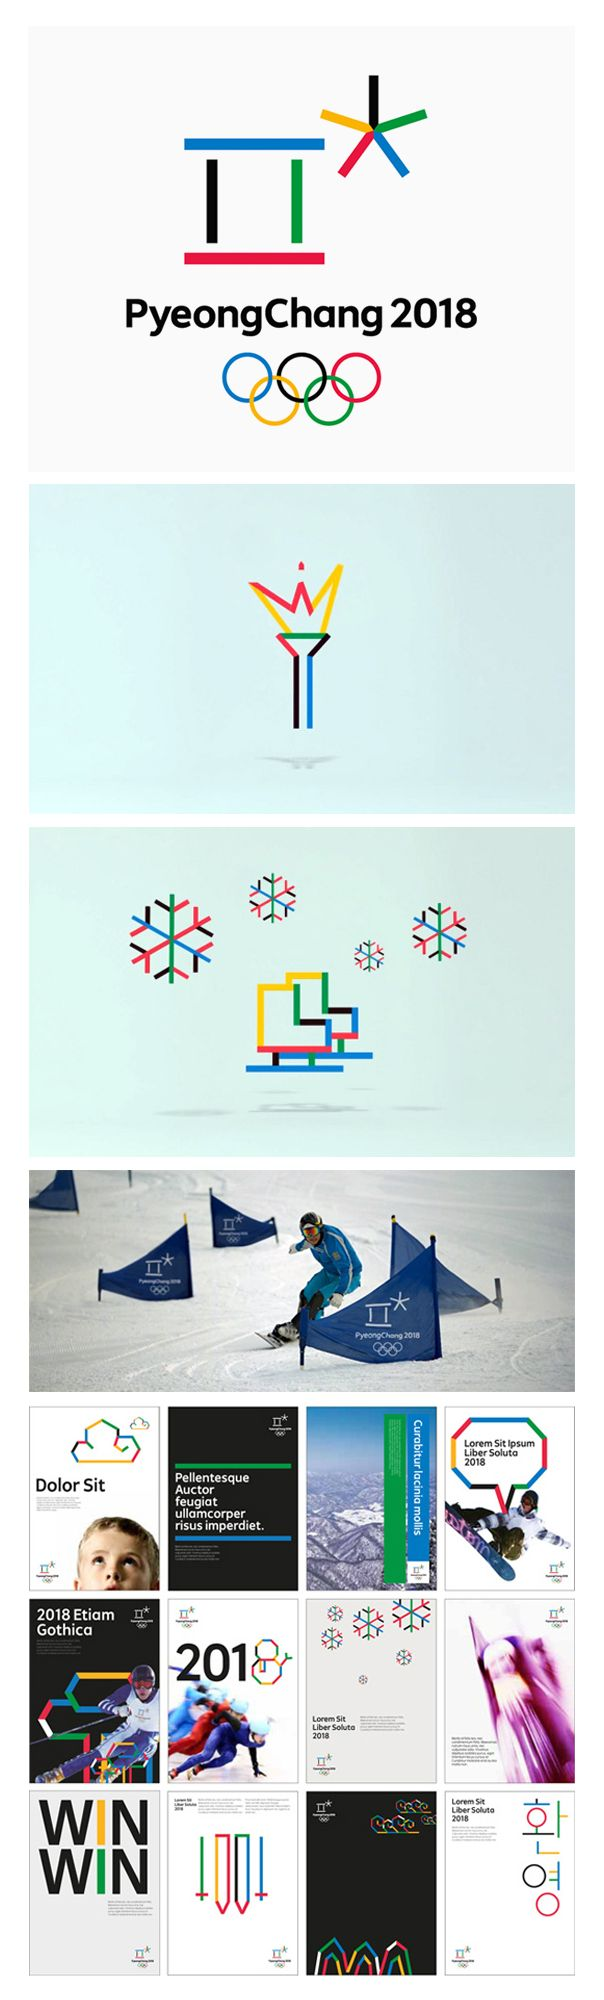 Winter #Olympics branding for 2018 is all about harmony - #PyeongChang2018 #XXIIIOlympic